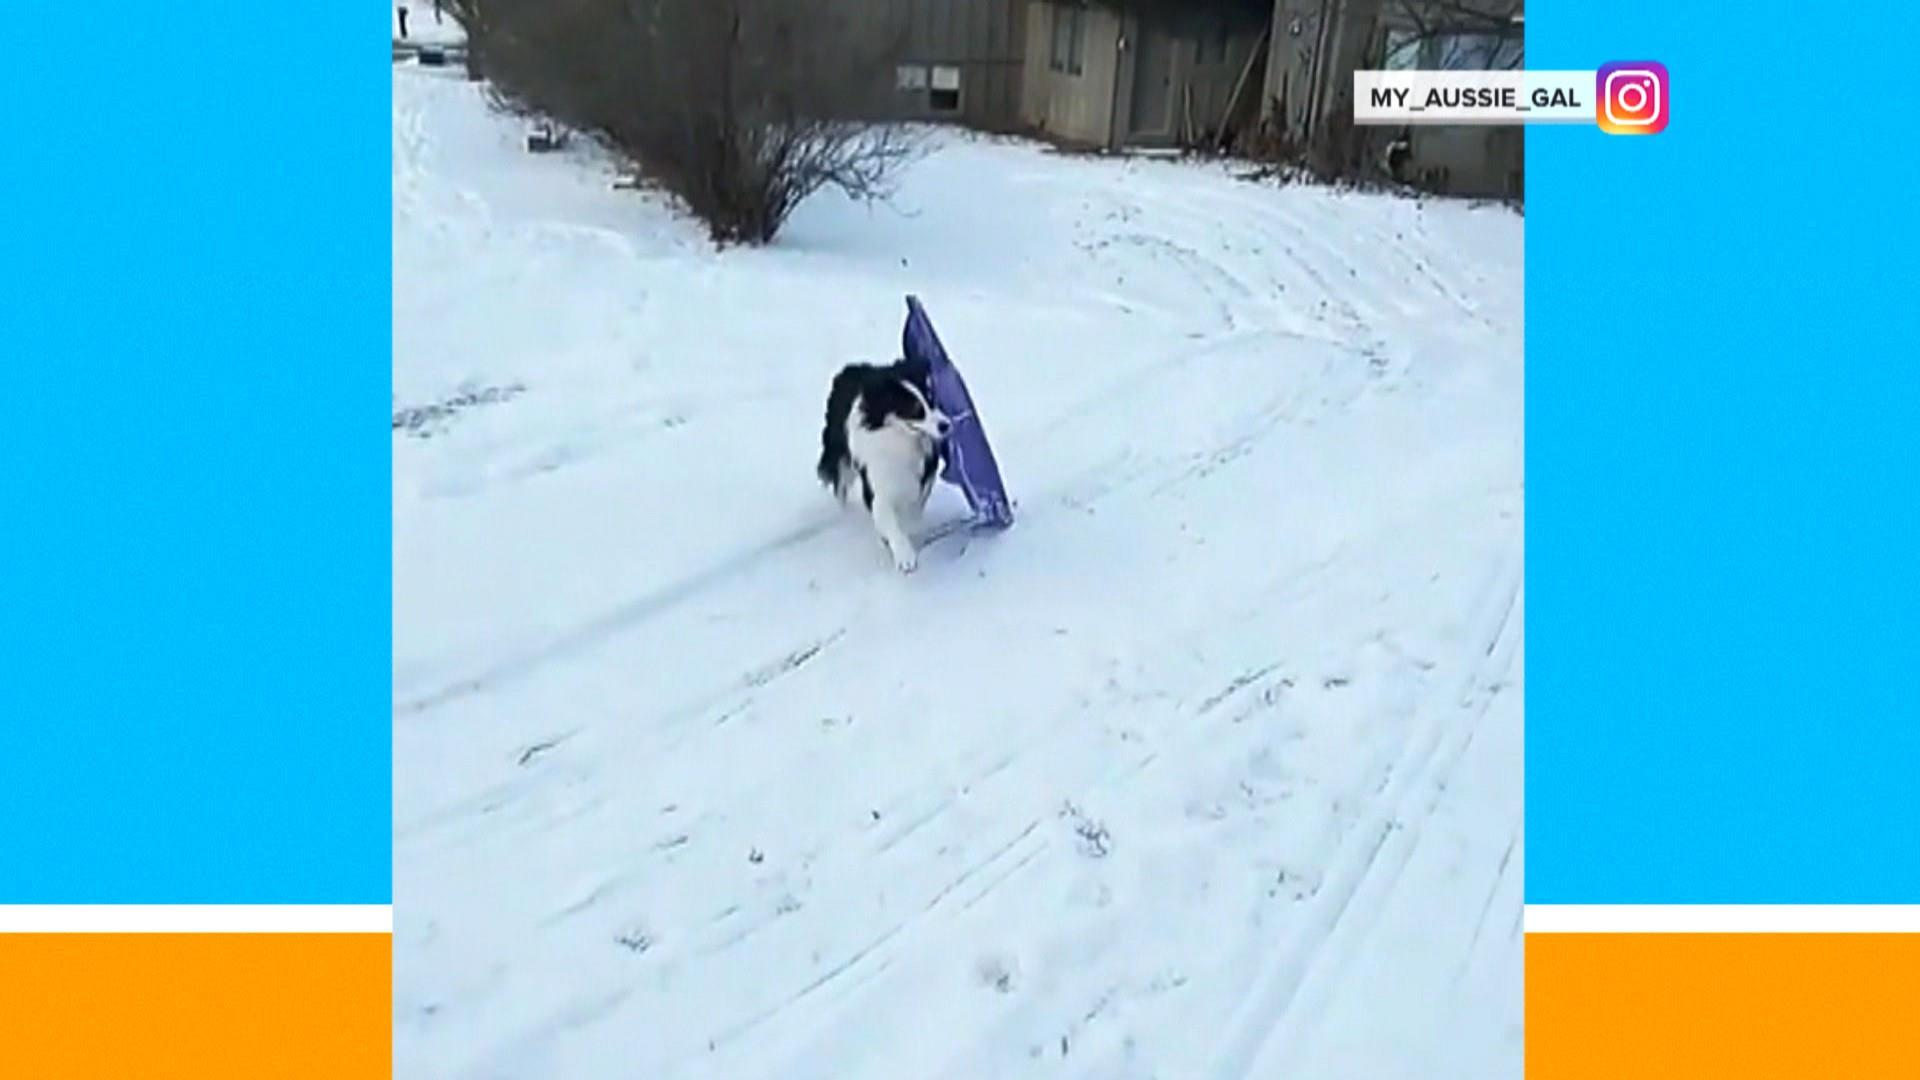 Snow Dogs Cast Dog Hd Wiring Harness This Pulls Her Own Sled So She Can Ride It Down A Hill